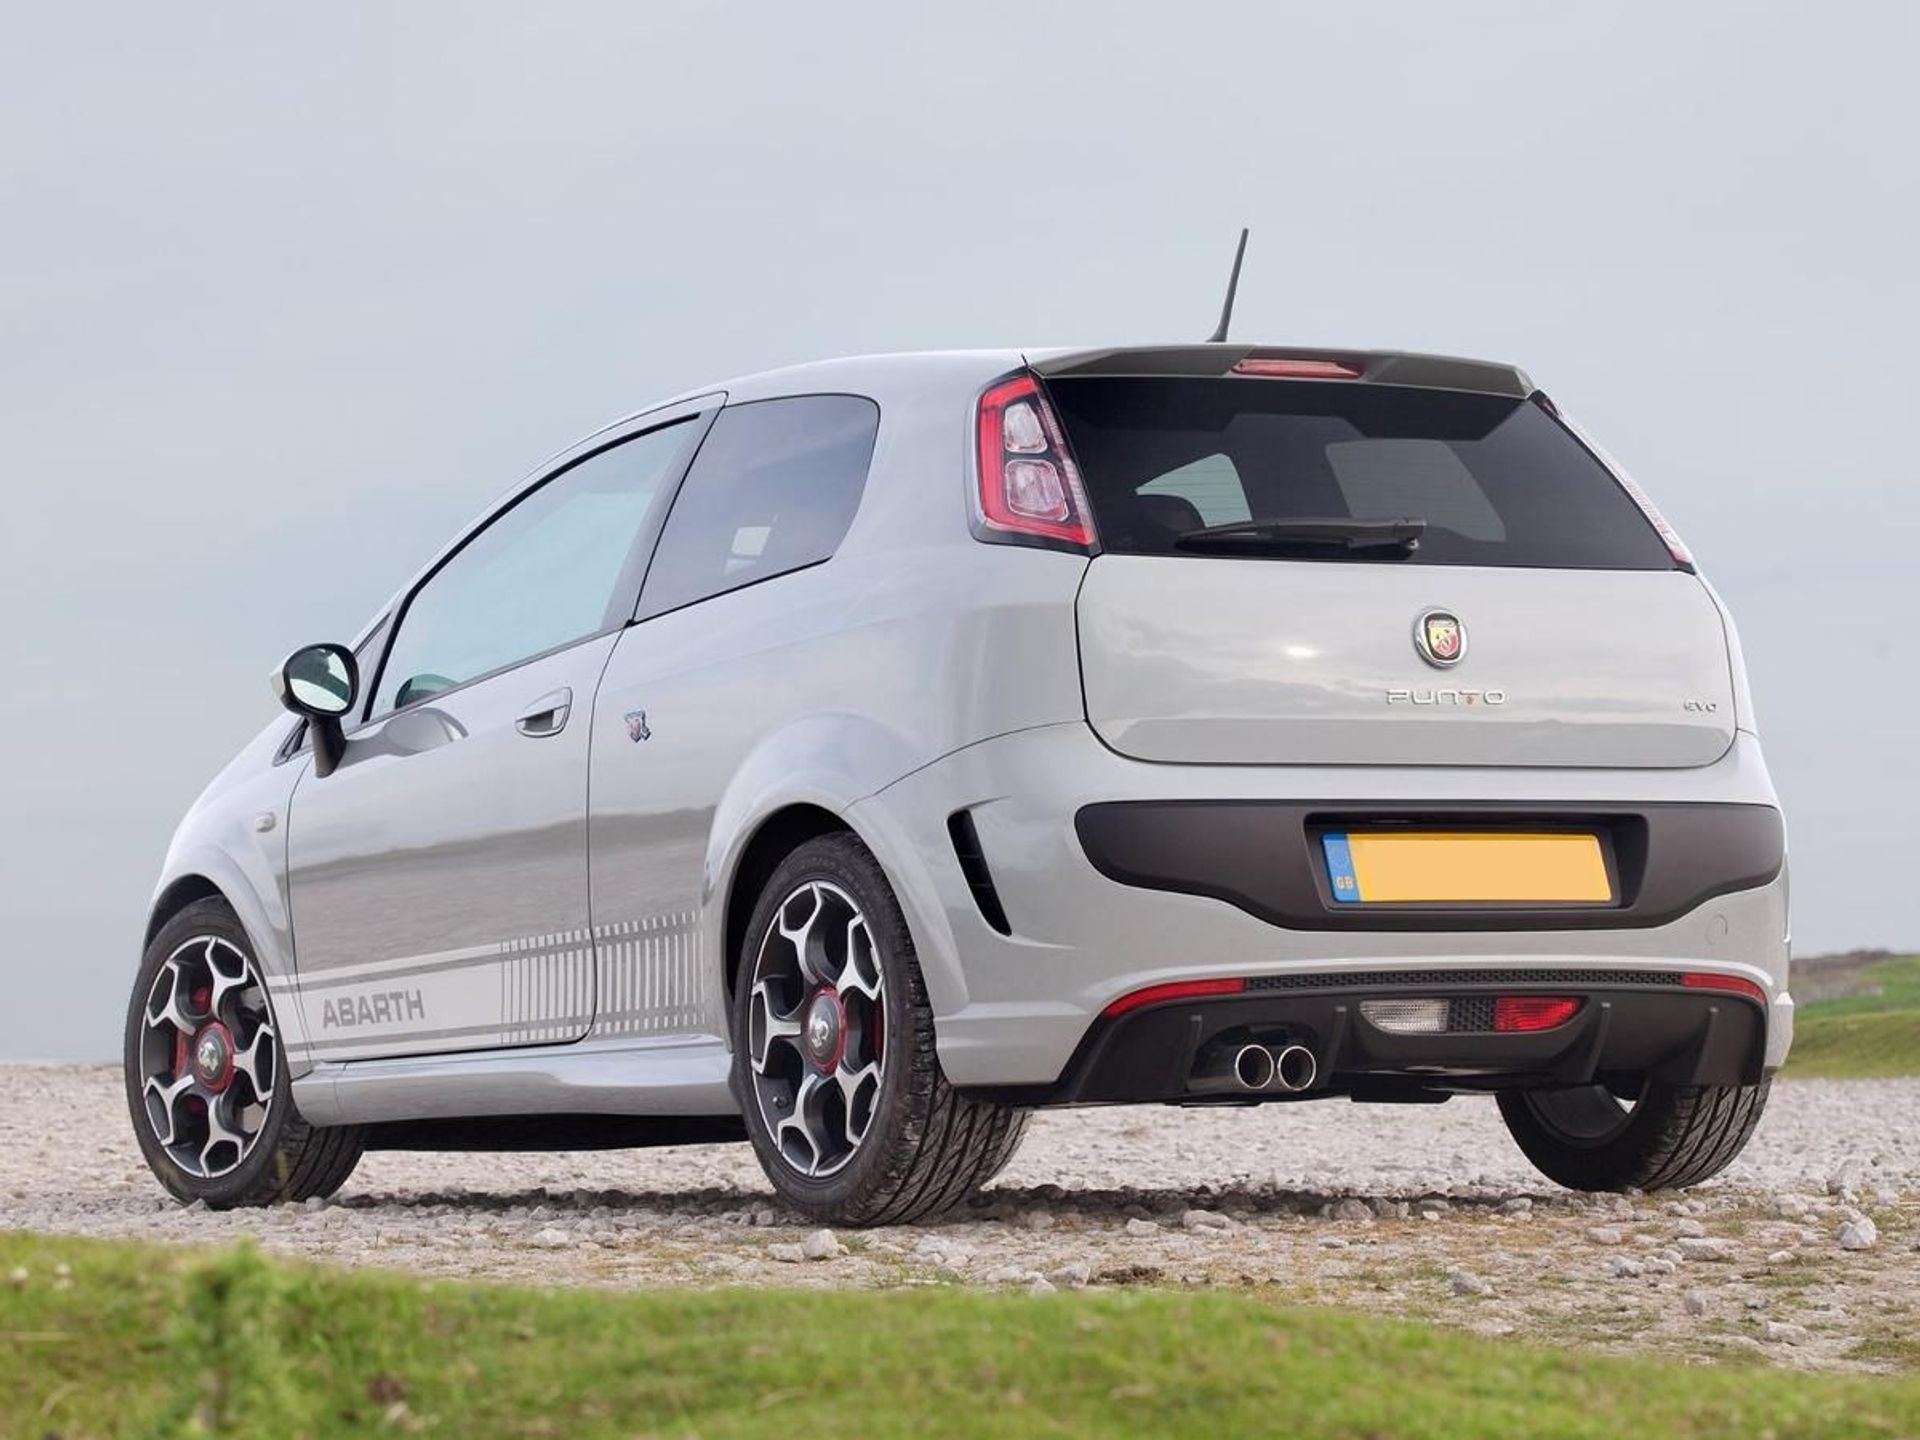 Abarth Punto Evo Supersport image